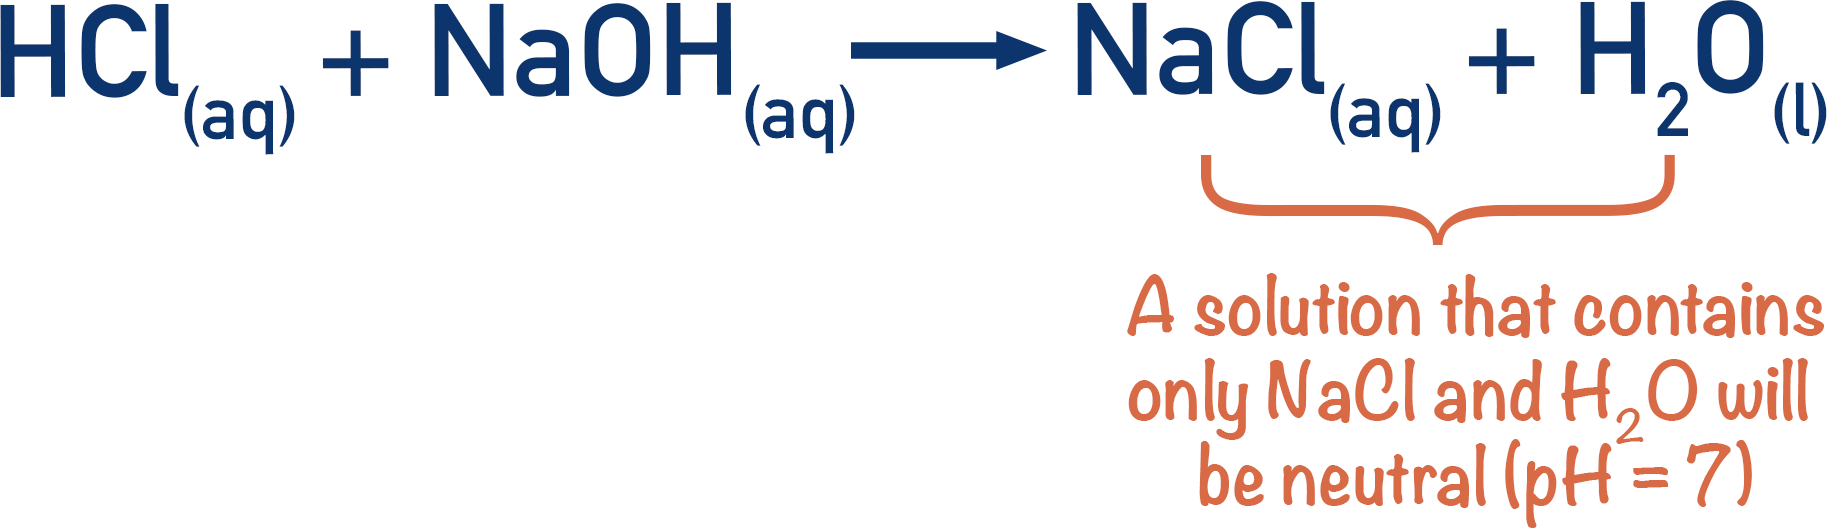 Neutral solution pH 7 from HCl + NaOH forming NaCl + H2O